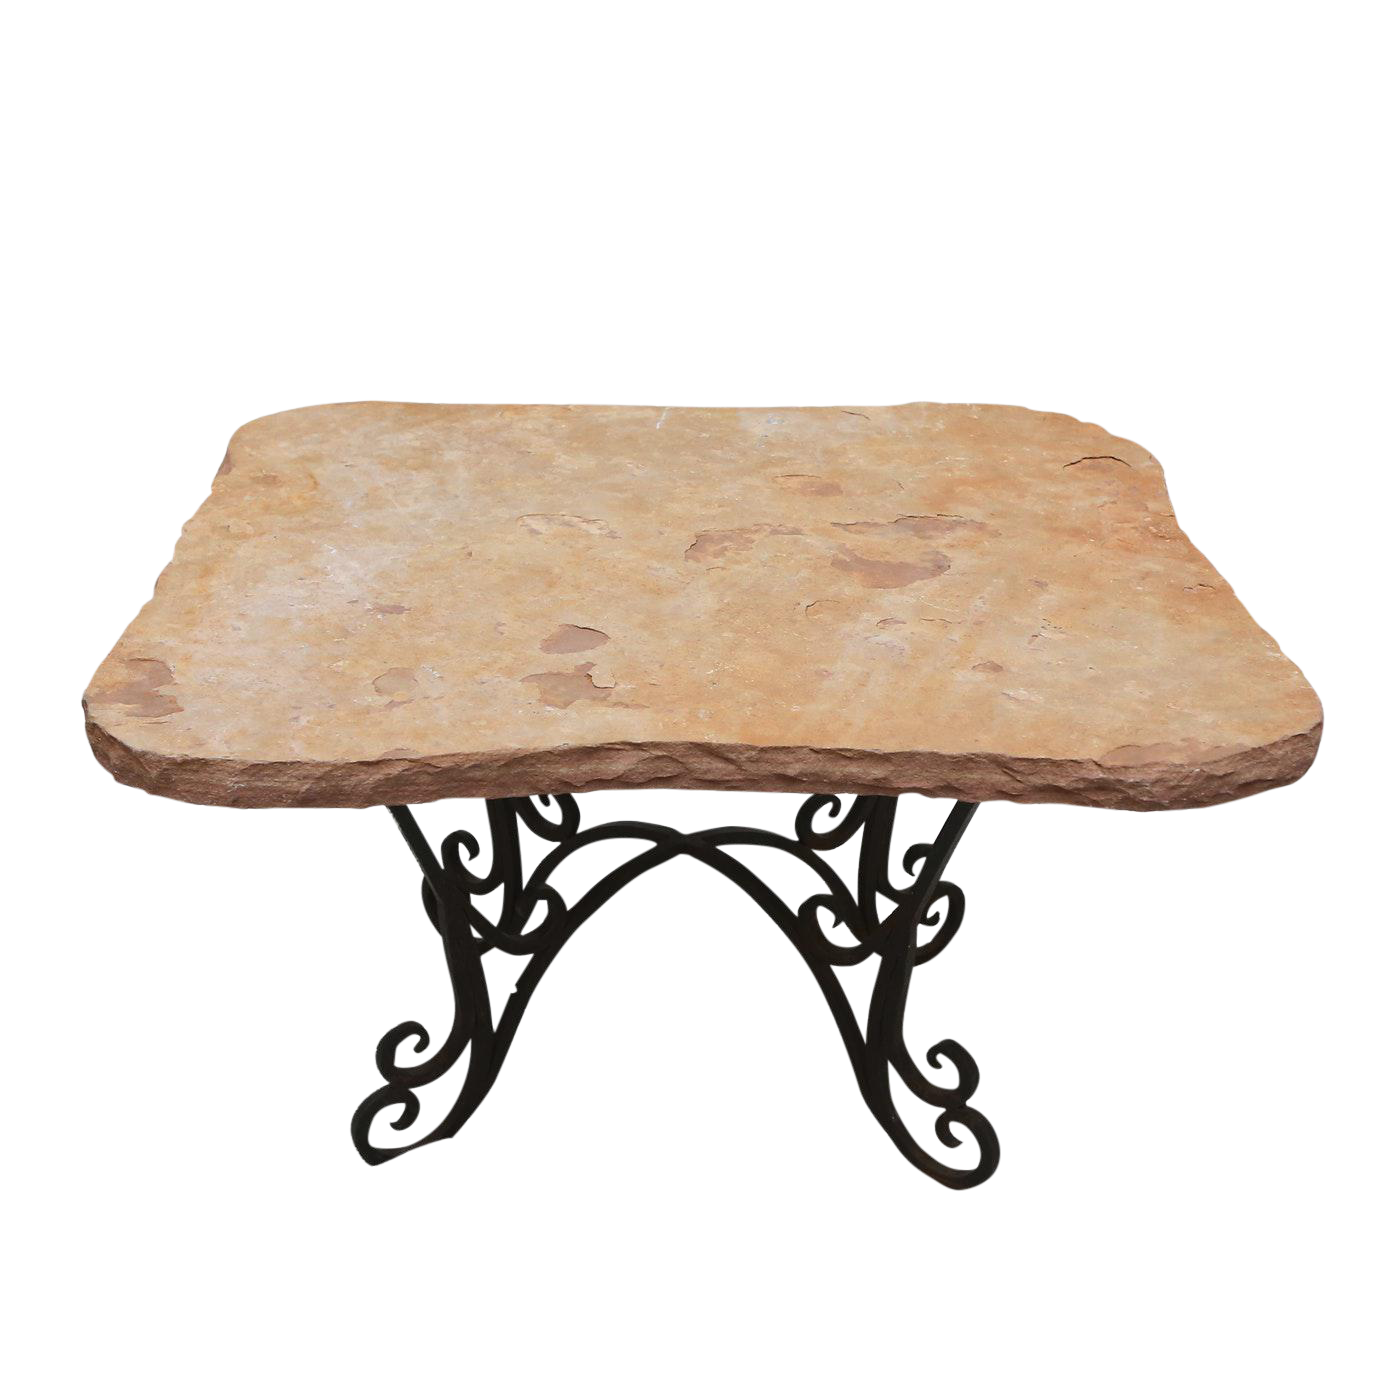 Natural Cut Stone Table